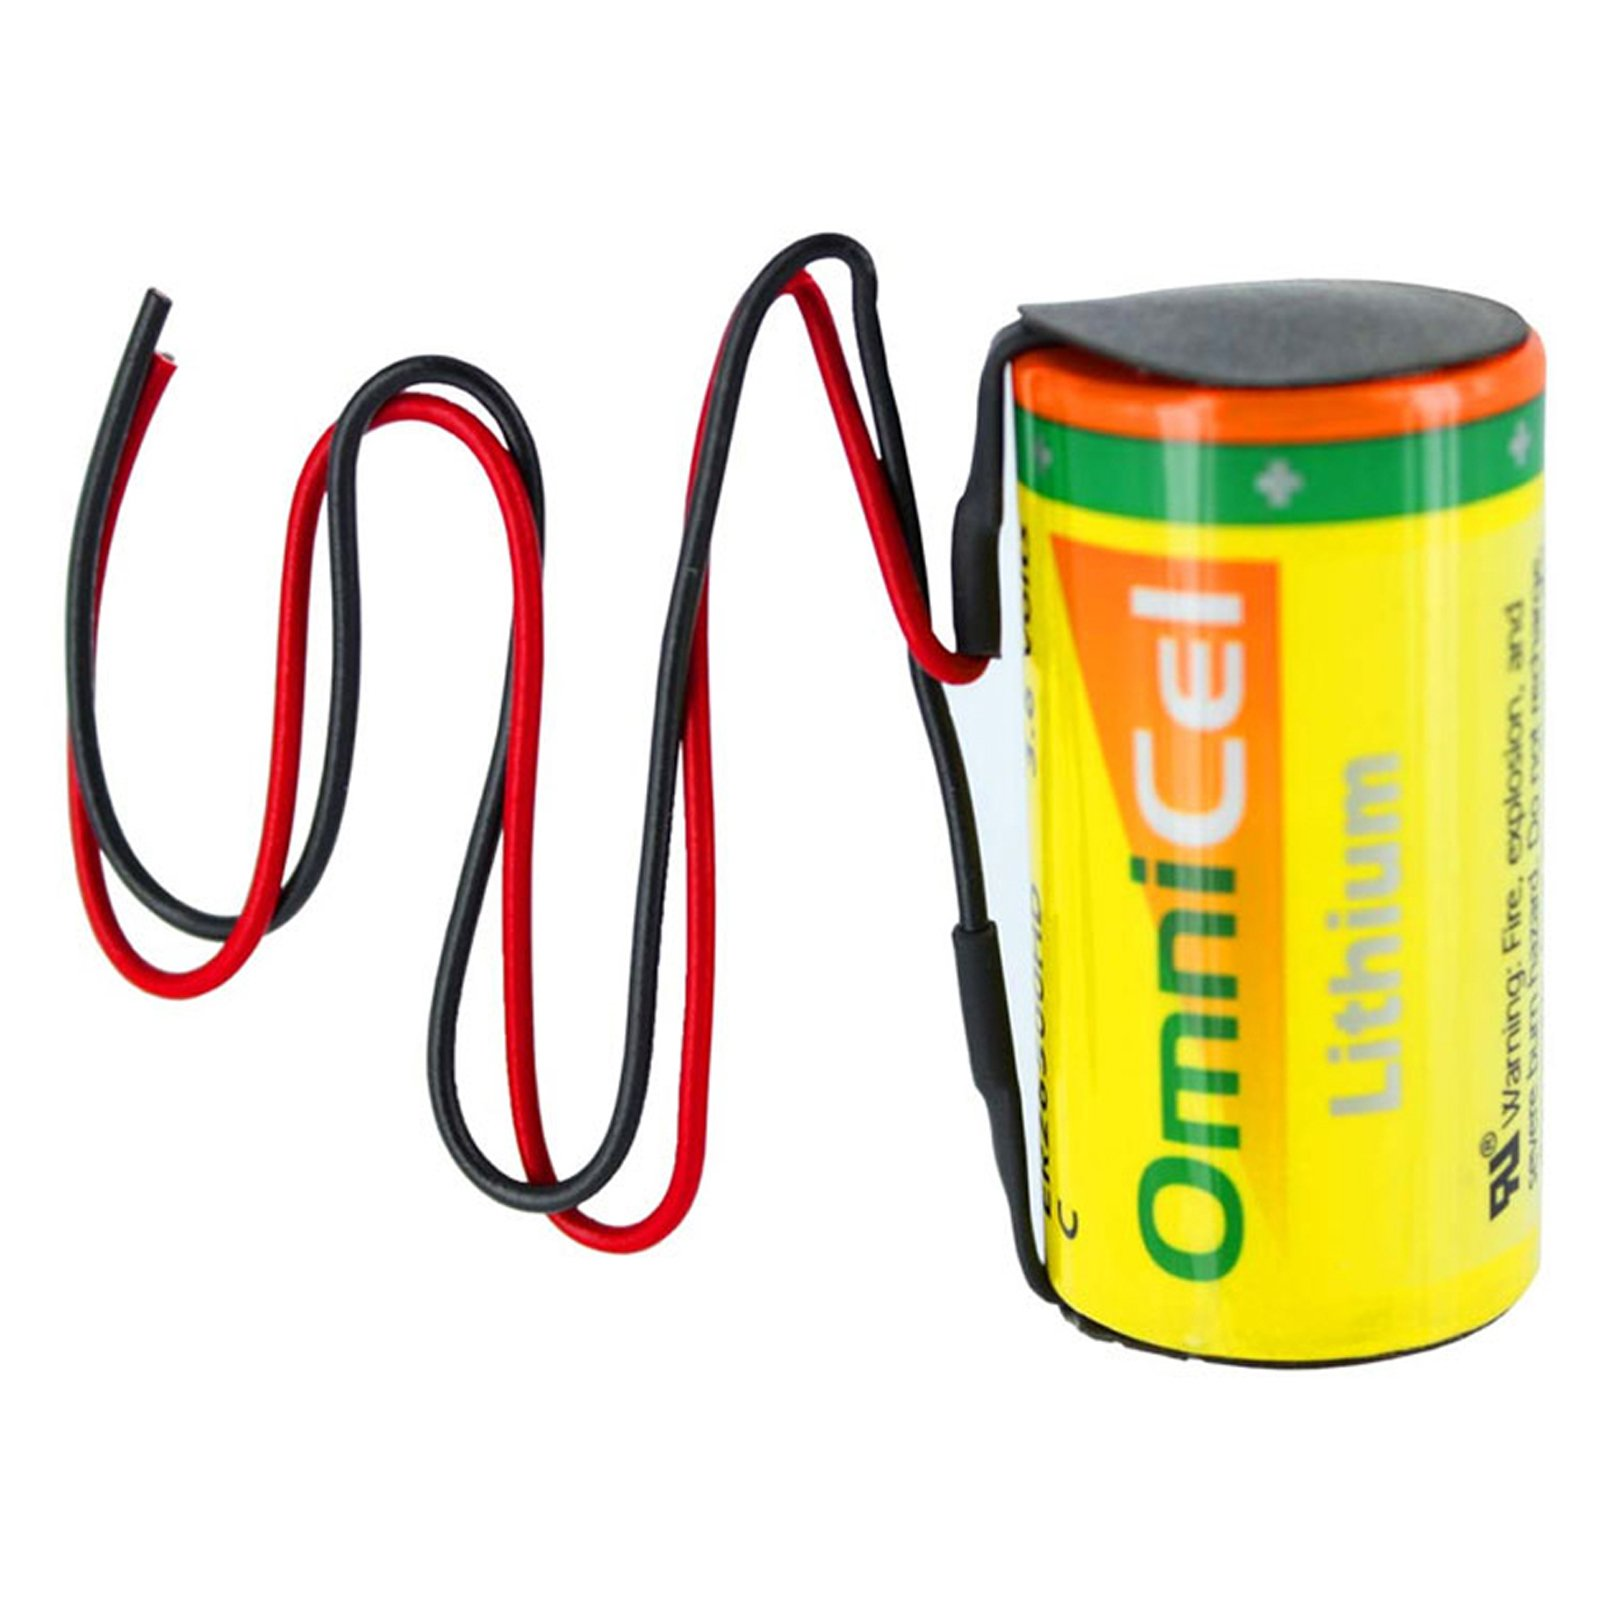 OmniCel ER26500HD 3.6V Size C Lithium Battery with Wire Leads Replaces PT-2200, LSH14, TL-2200 TL-4920 TL-5920, SB-C01 SB-C02, XL-145F For Signal lamp, Industrial PC, Computer RAM, Medical equipment by Exell Battery